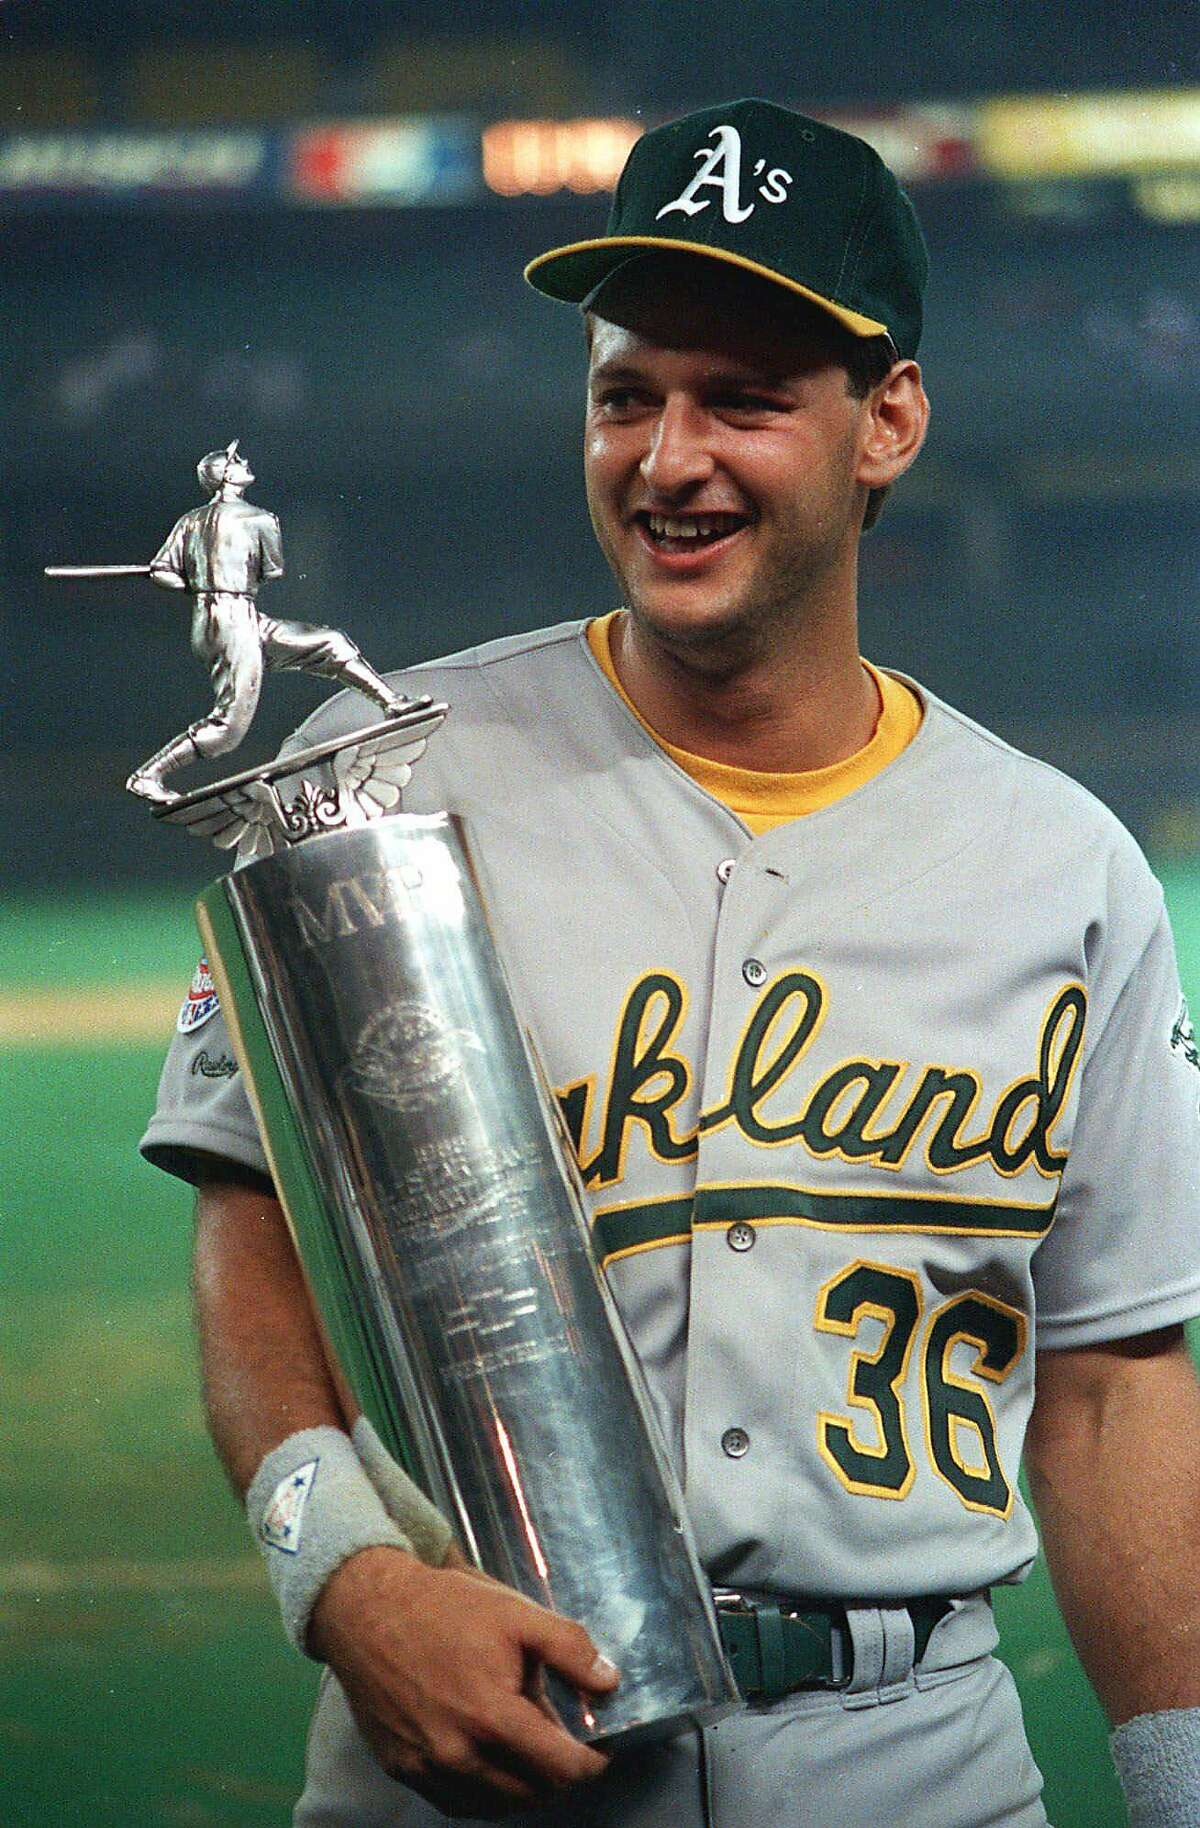 In this file photo Oakland A's Terry Steinbach holds his Most Valuable Player trophy after being selected as the top player in the All-Star game in Cincinnati, in this July 13, 1988 photo. Minnesota Twins catcher Terry Steinbach announced Tuesday Nov. 16, 1999 he is retiring from baseball after 13 full seasons, three with Minnesota. Steinbach, 37, signed with the Twins as a free agent in 1996 after 11 years with Oakland. (AP Photo/Al Behrman)****FILE PHOTO